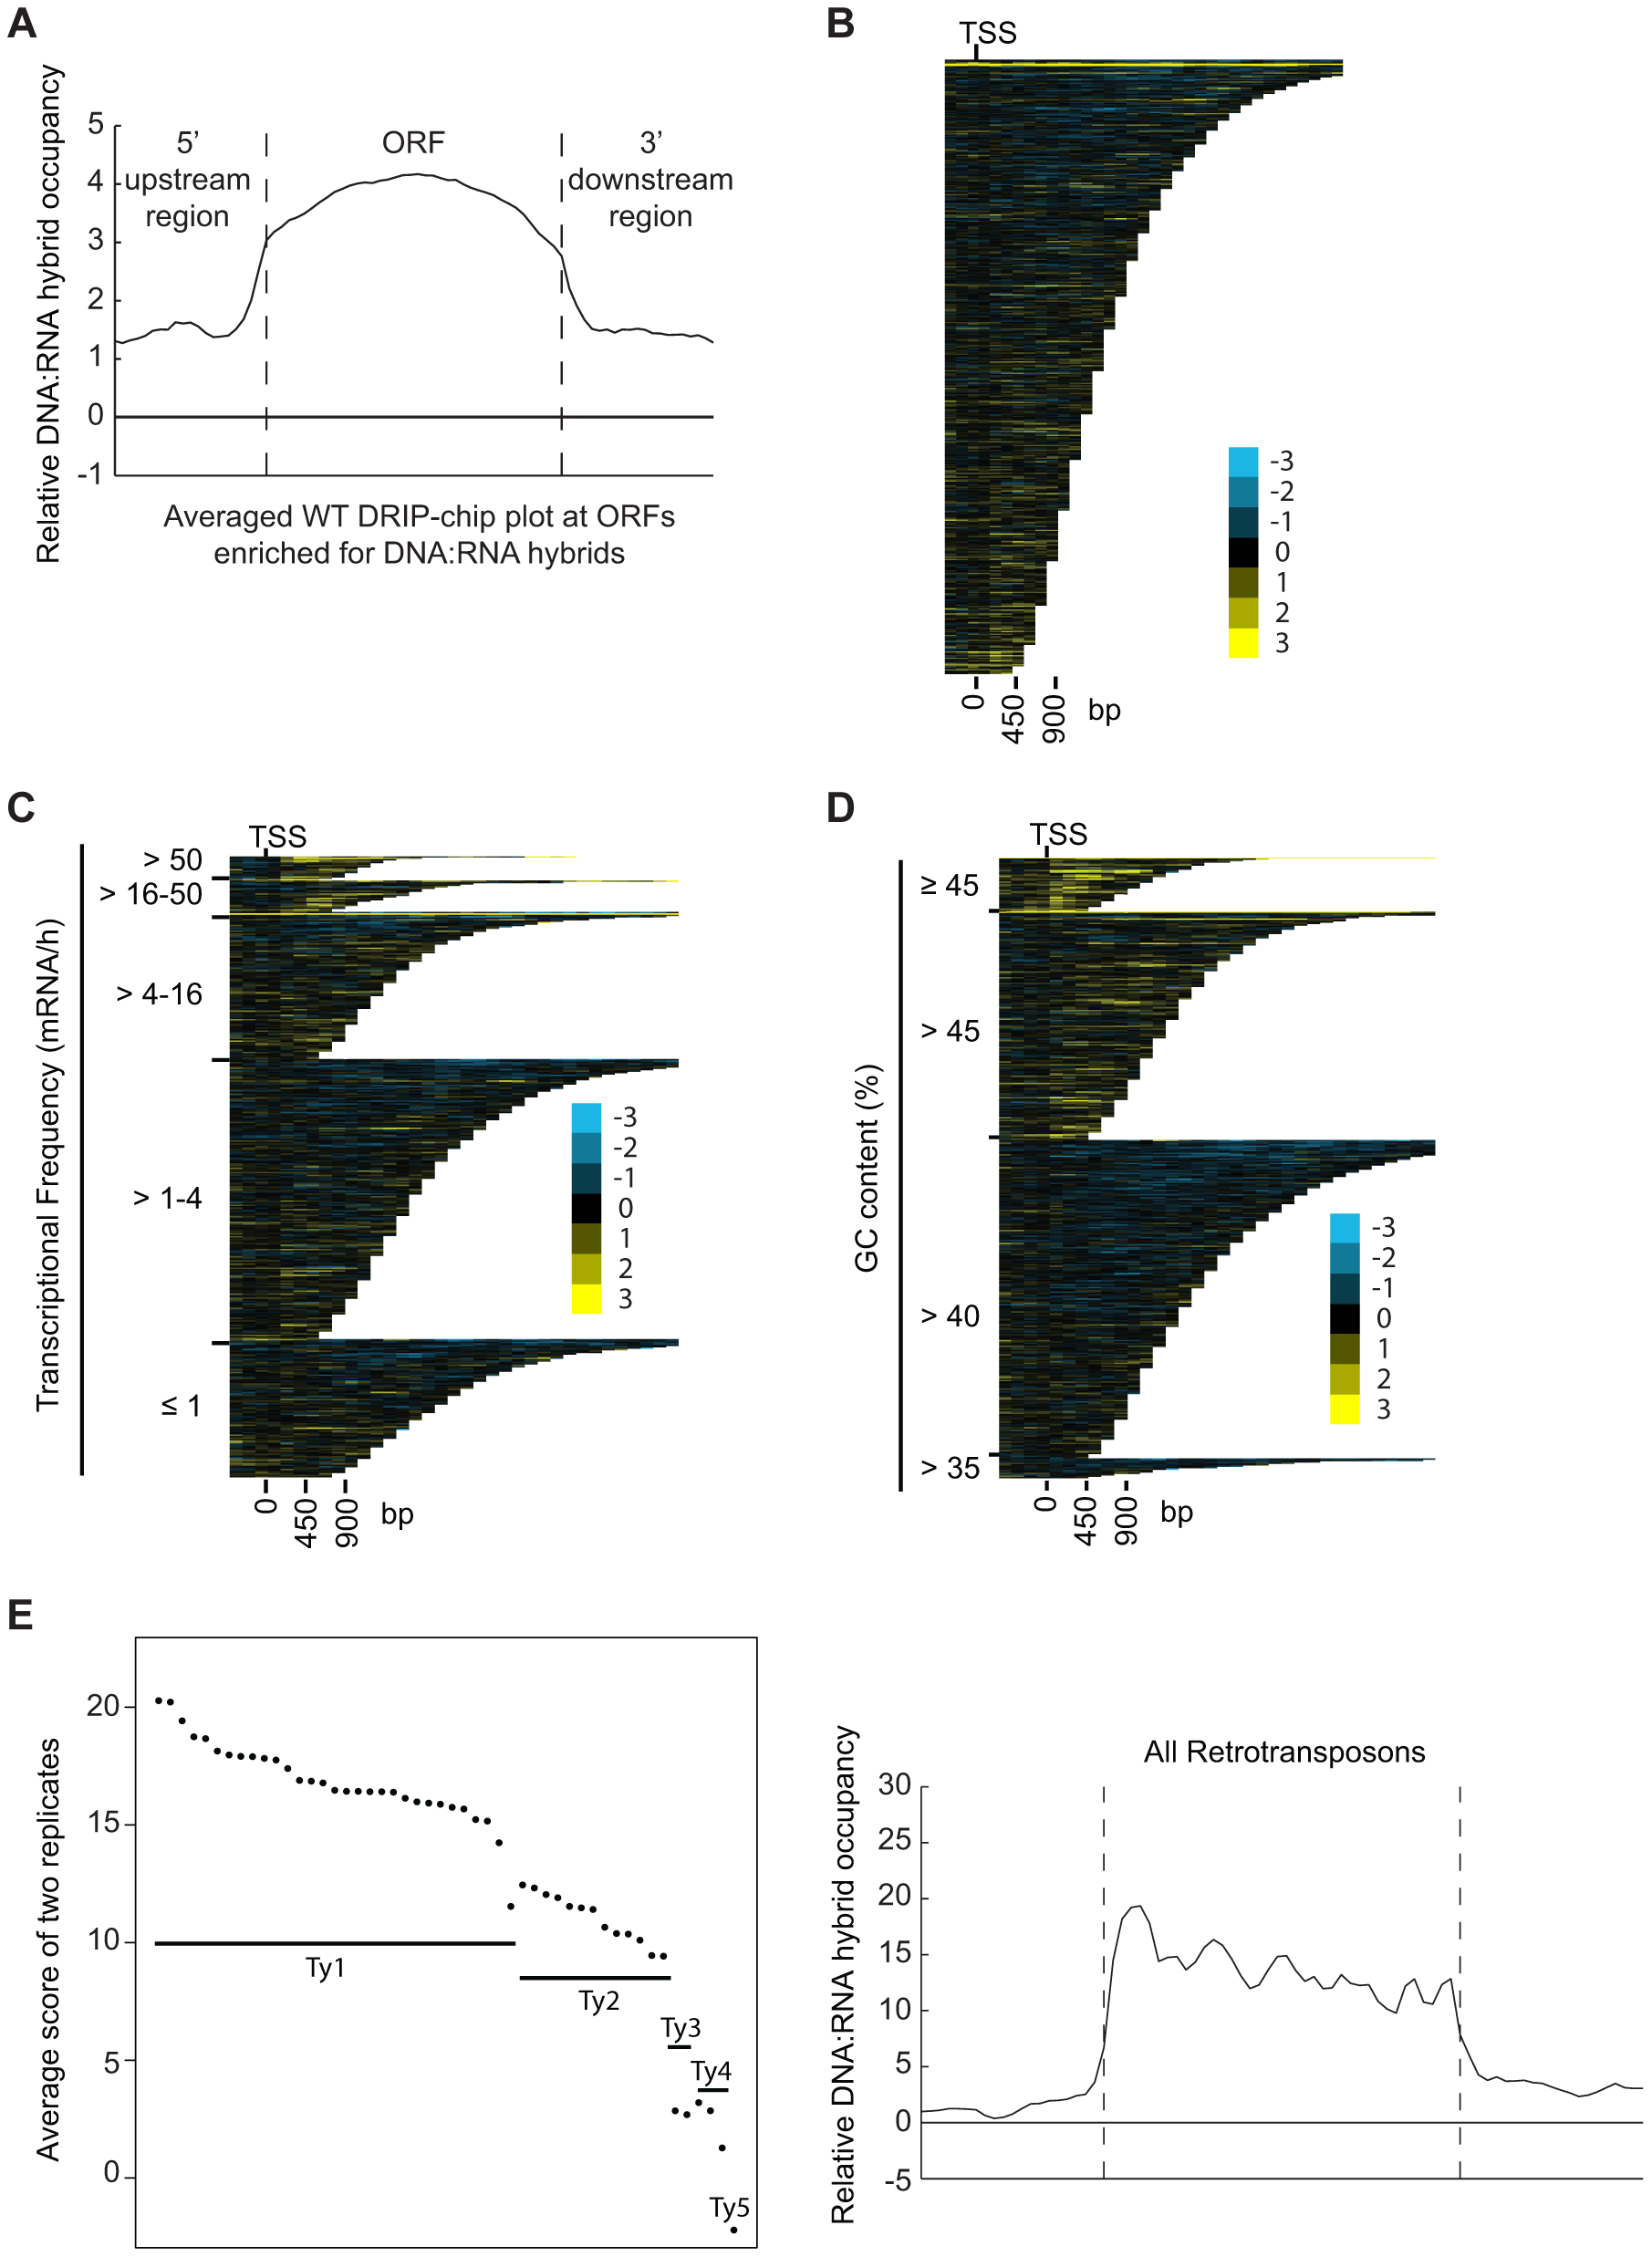 DNA:RNA hybrids are enriched at protein-encoding genes and retrotransposons of higher transcriptional frequency.